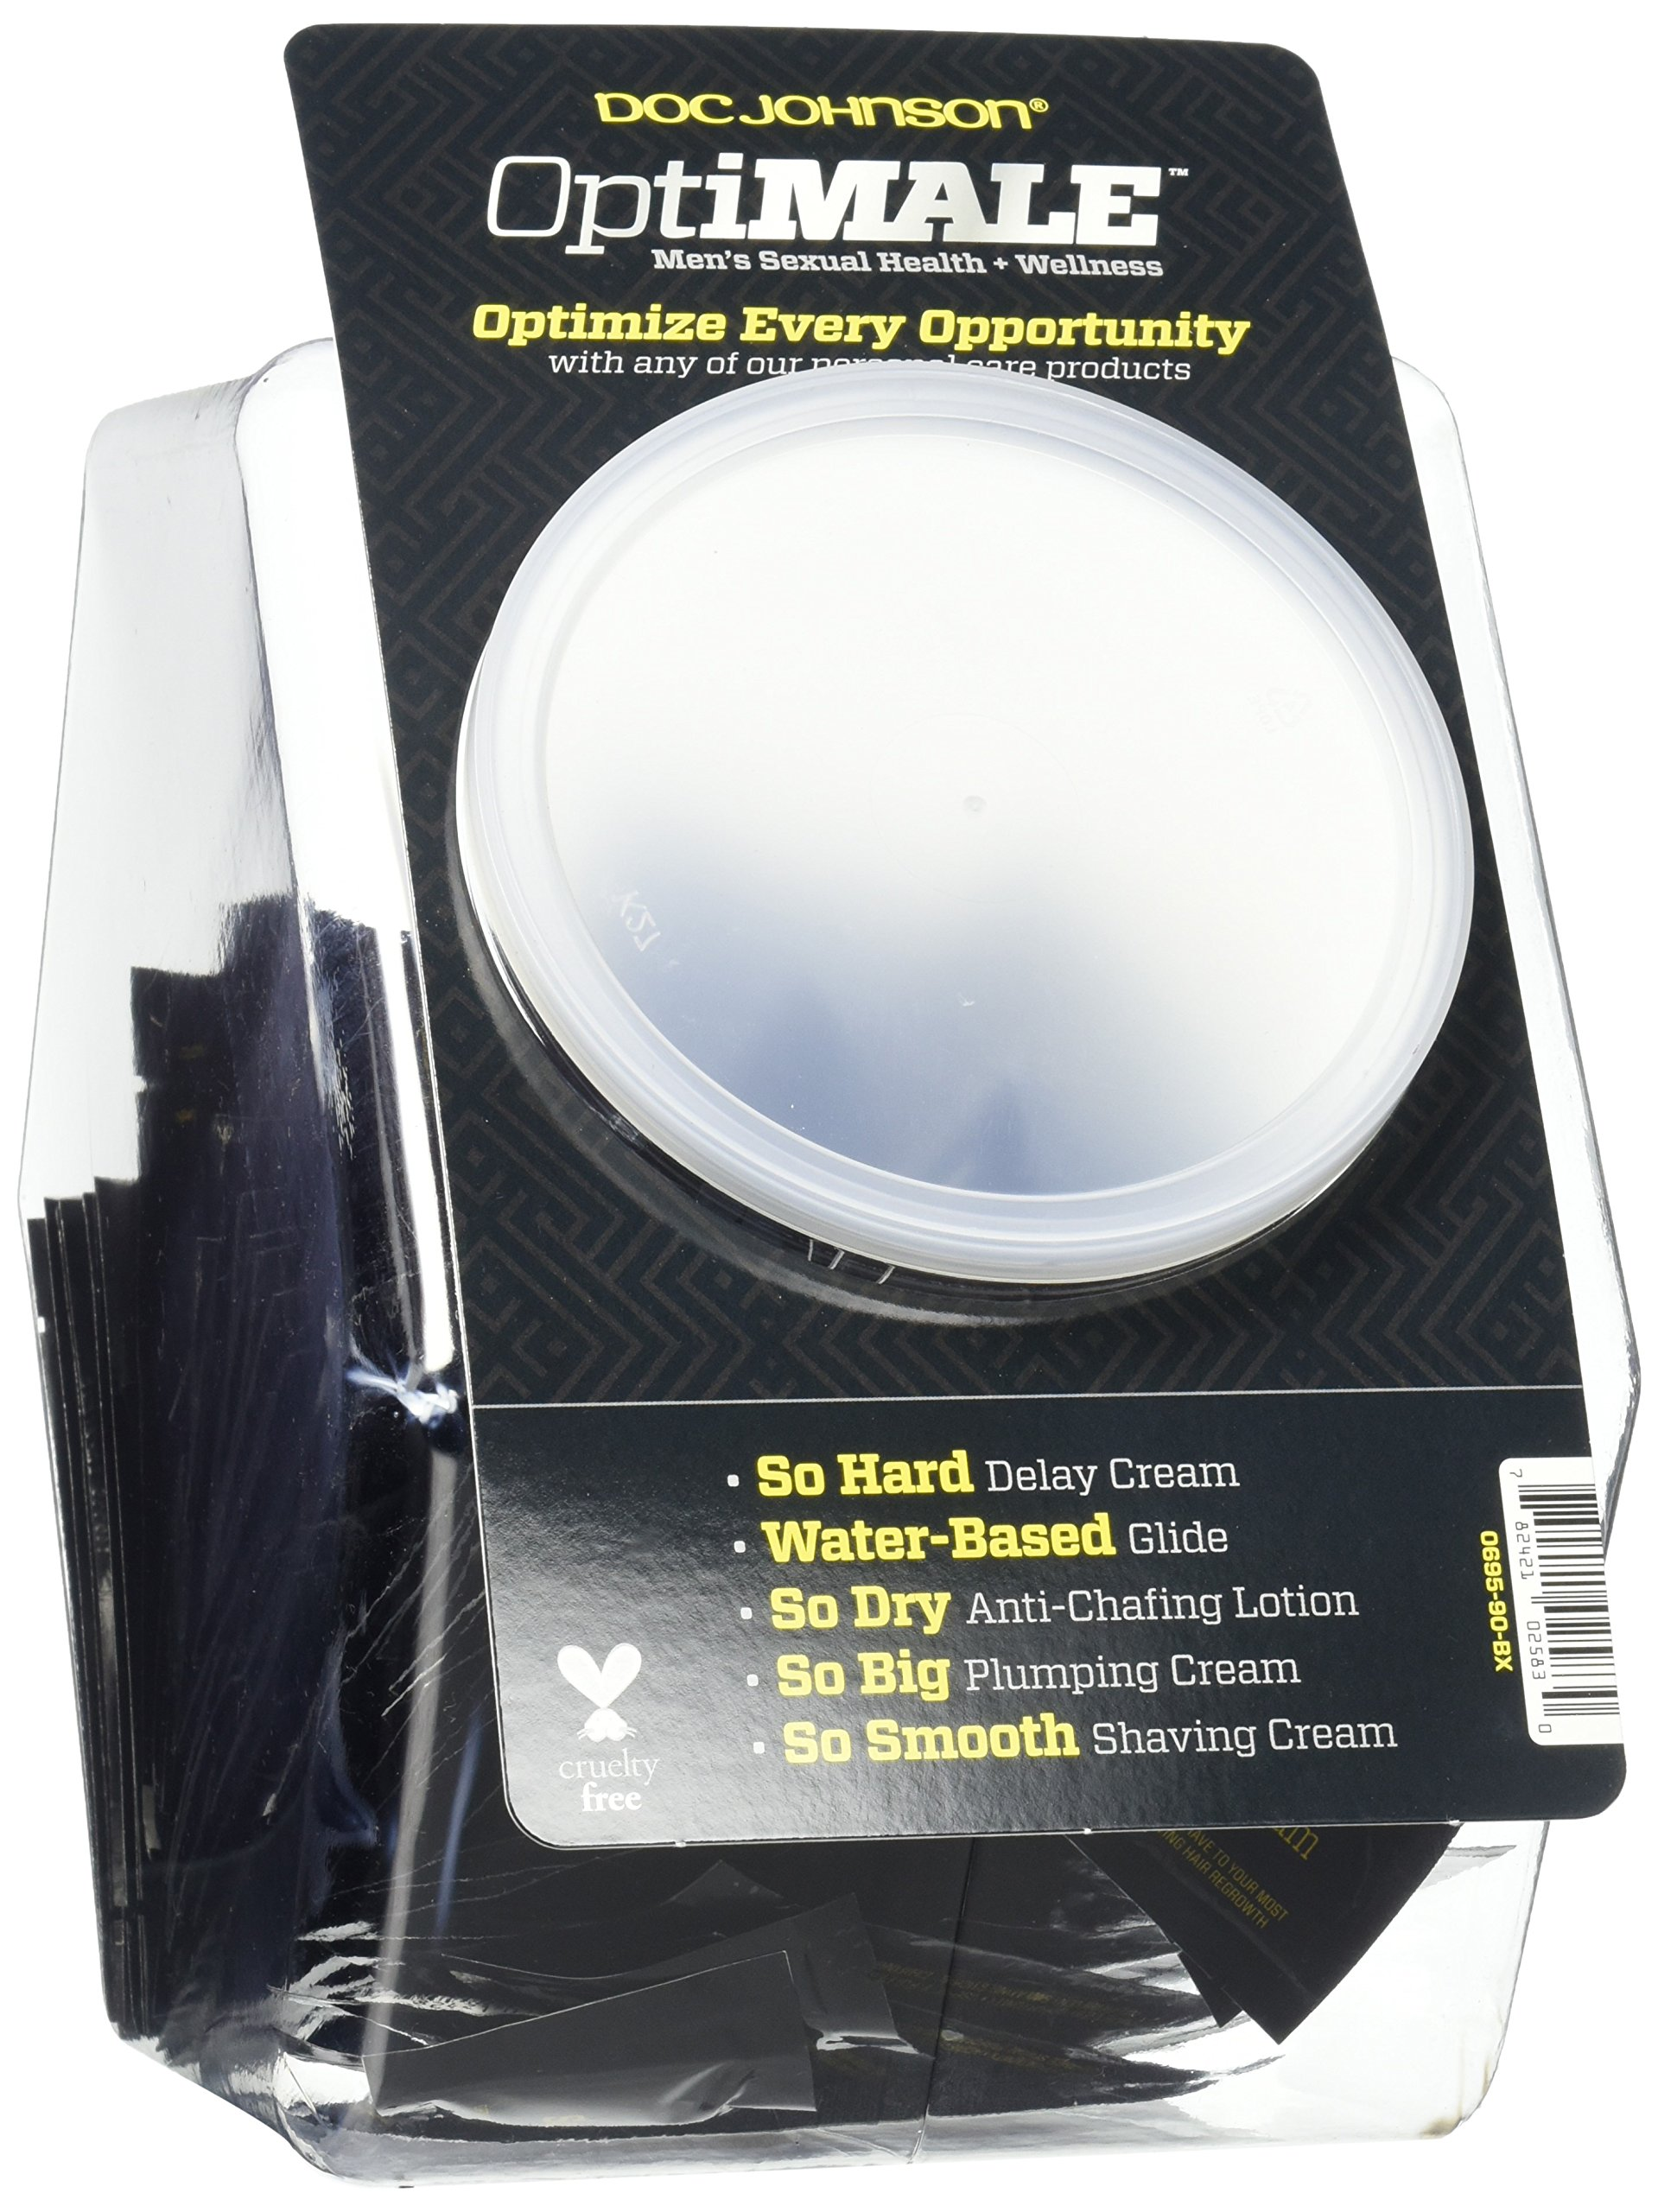 Doc Johnson OptiMALE - Personal Care Fishbowl - 120 Assorted Pouches - Water-Based Glide, So Hard, So Dry, So Big, So Smooth